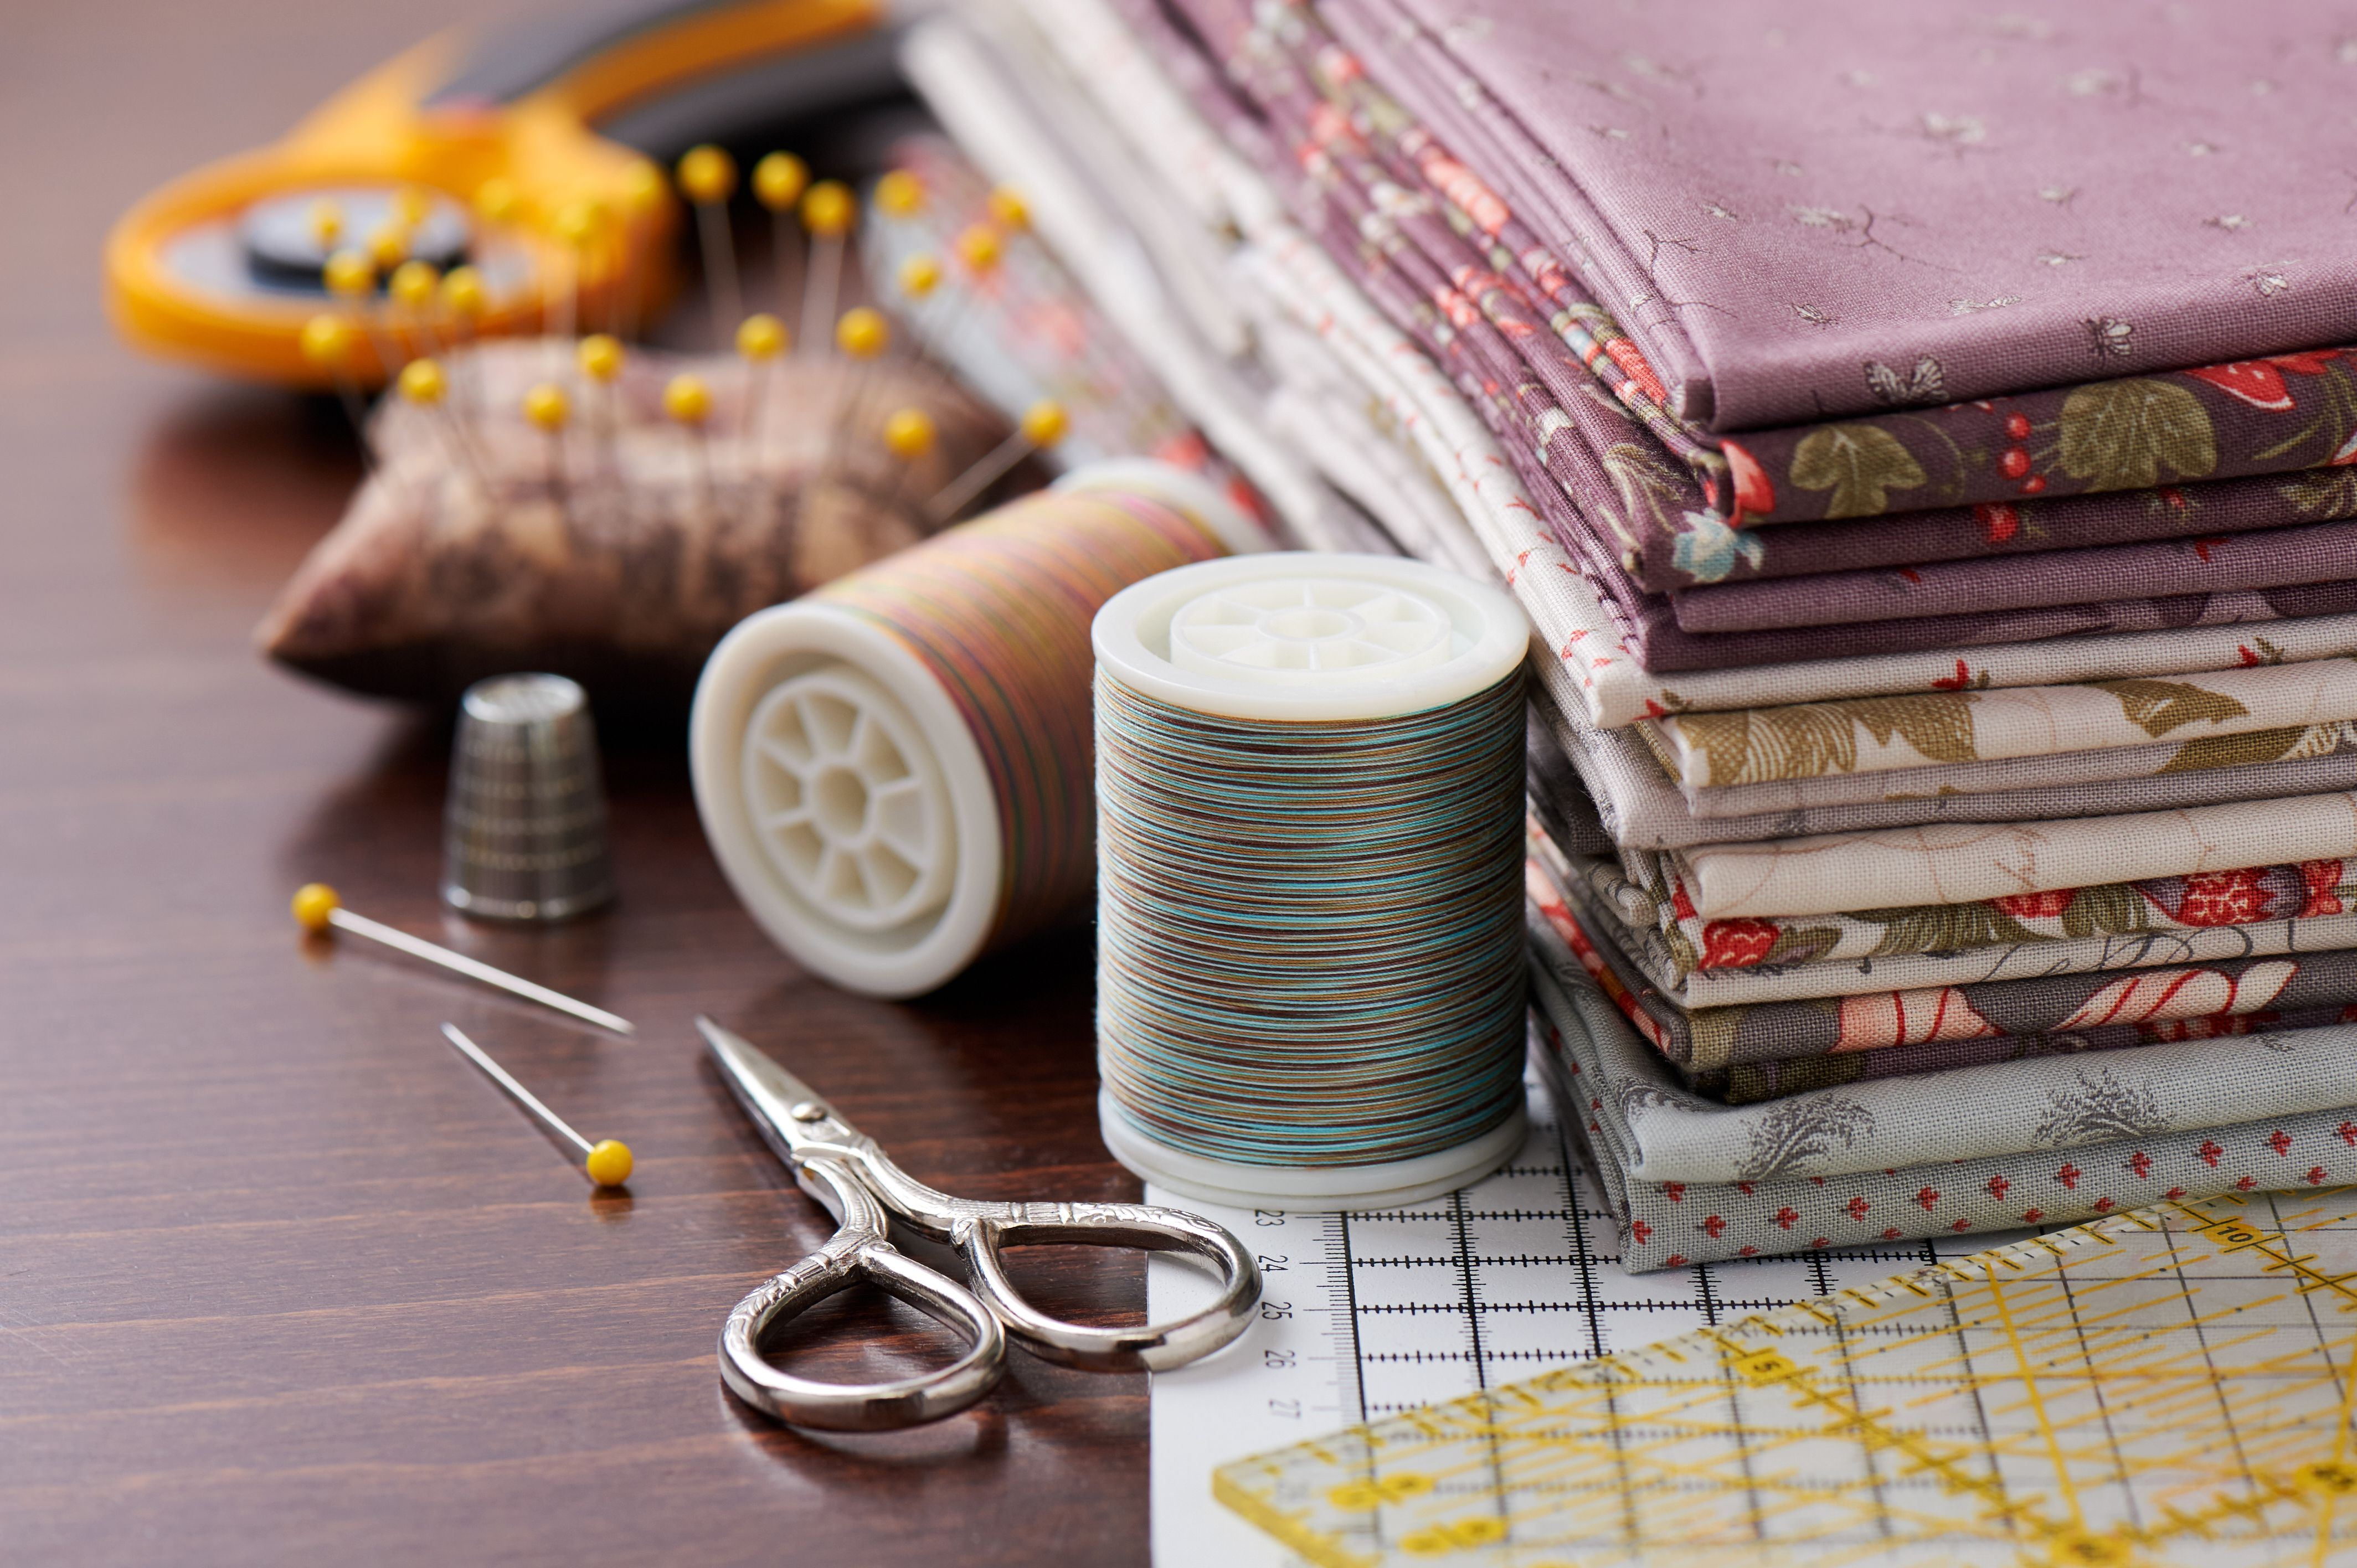 Stack of fabric for patchwork on craft mat, sewing accessories on wooden surface